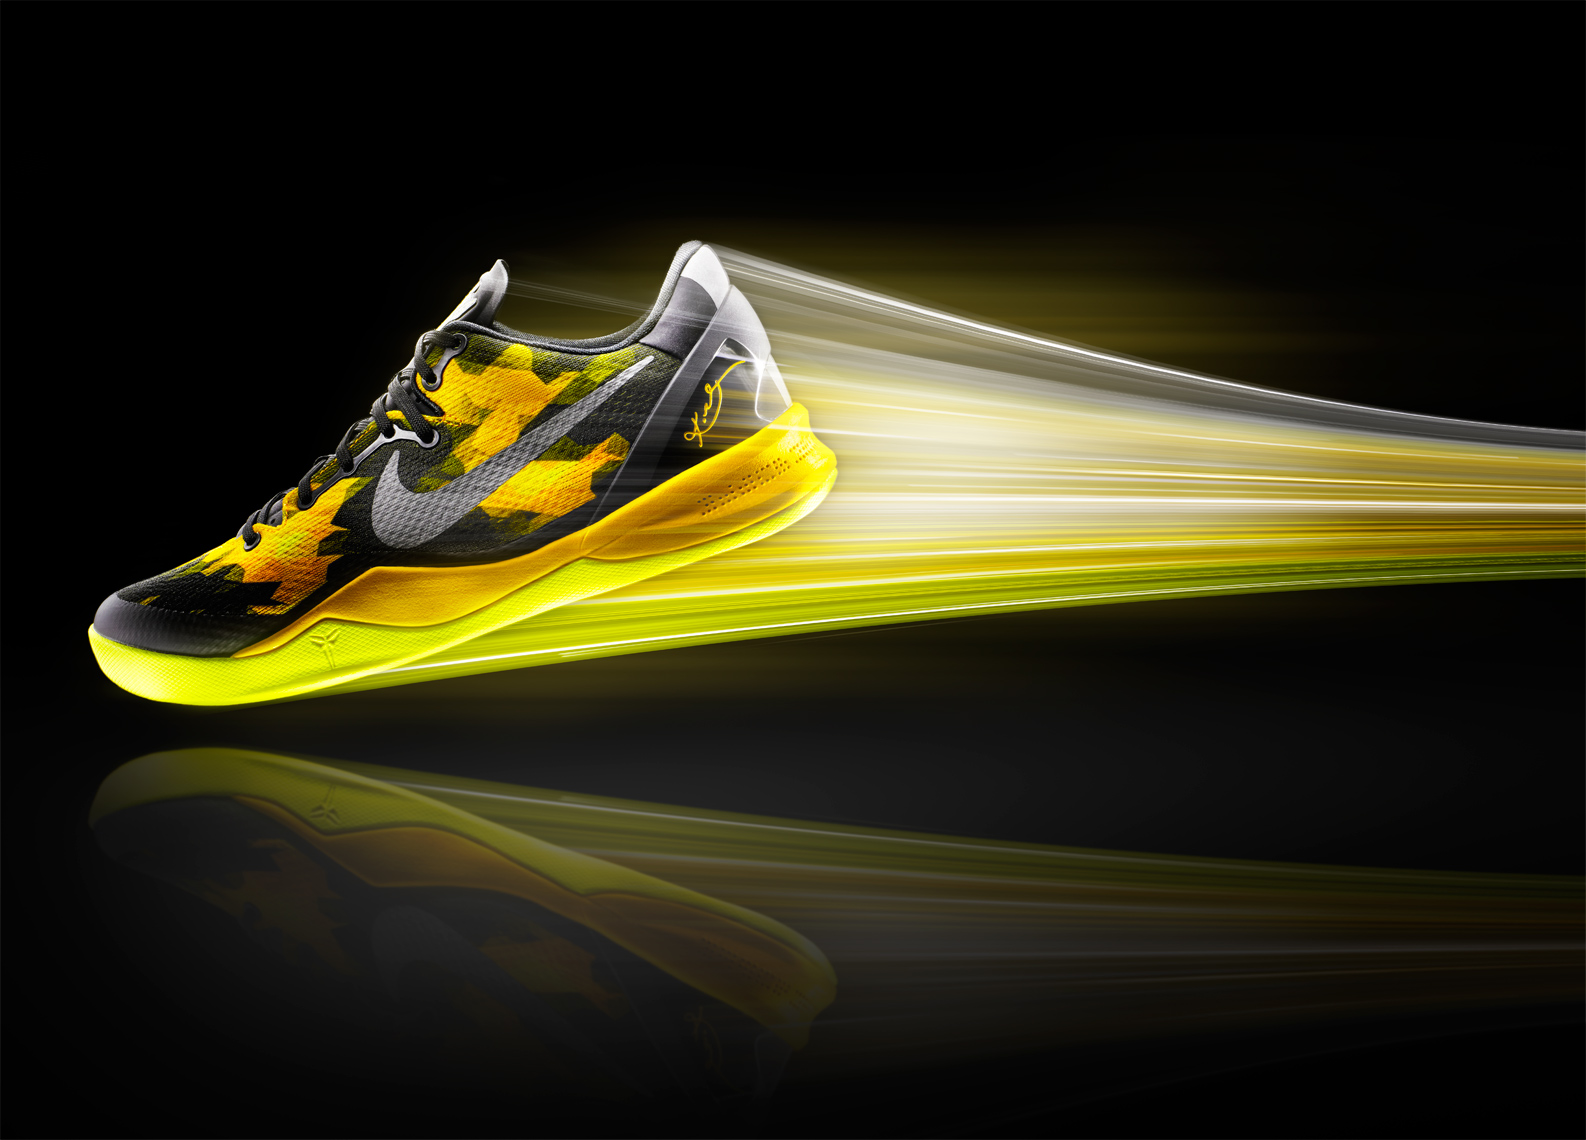 Nike Footwear Image Effects and Retouching